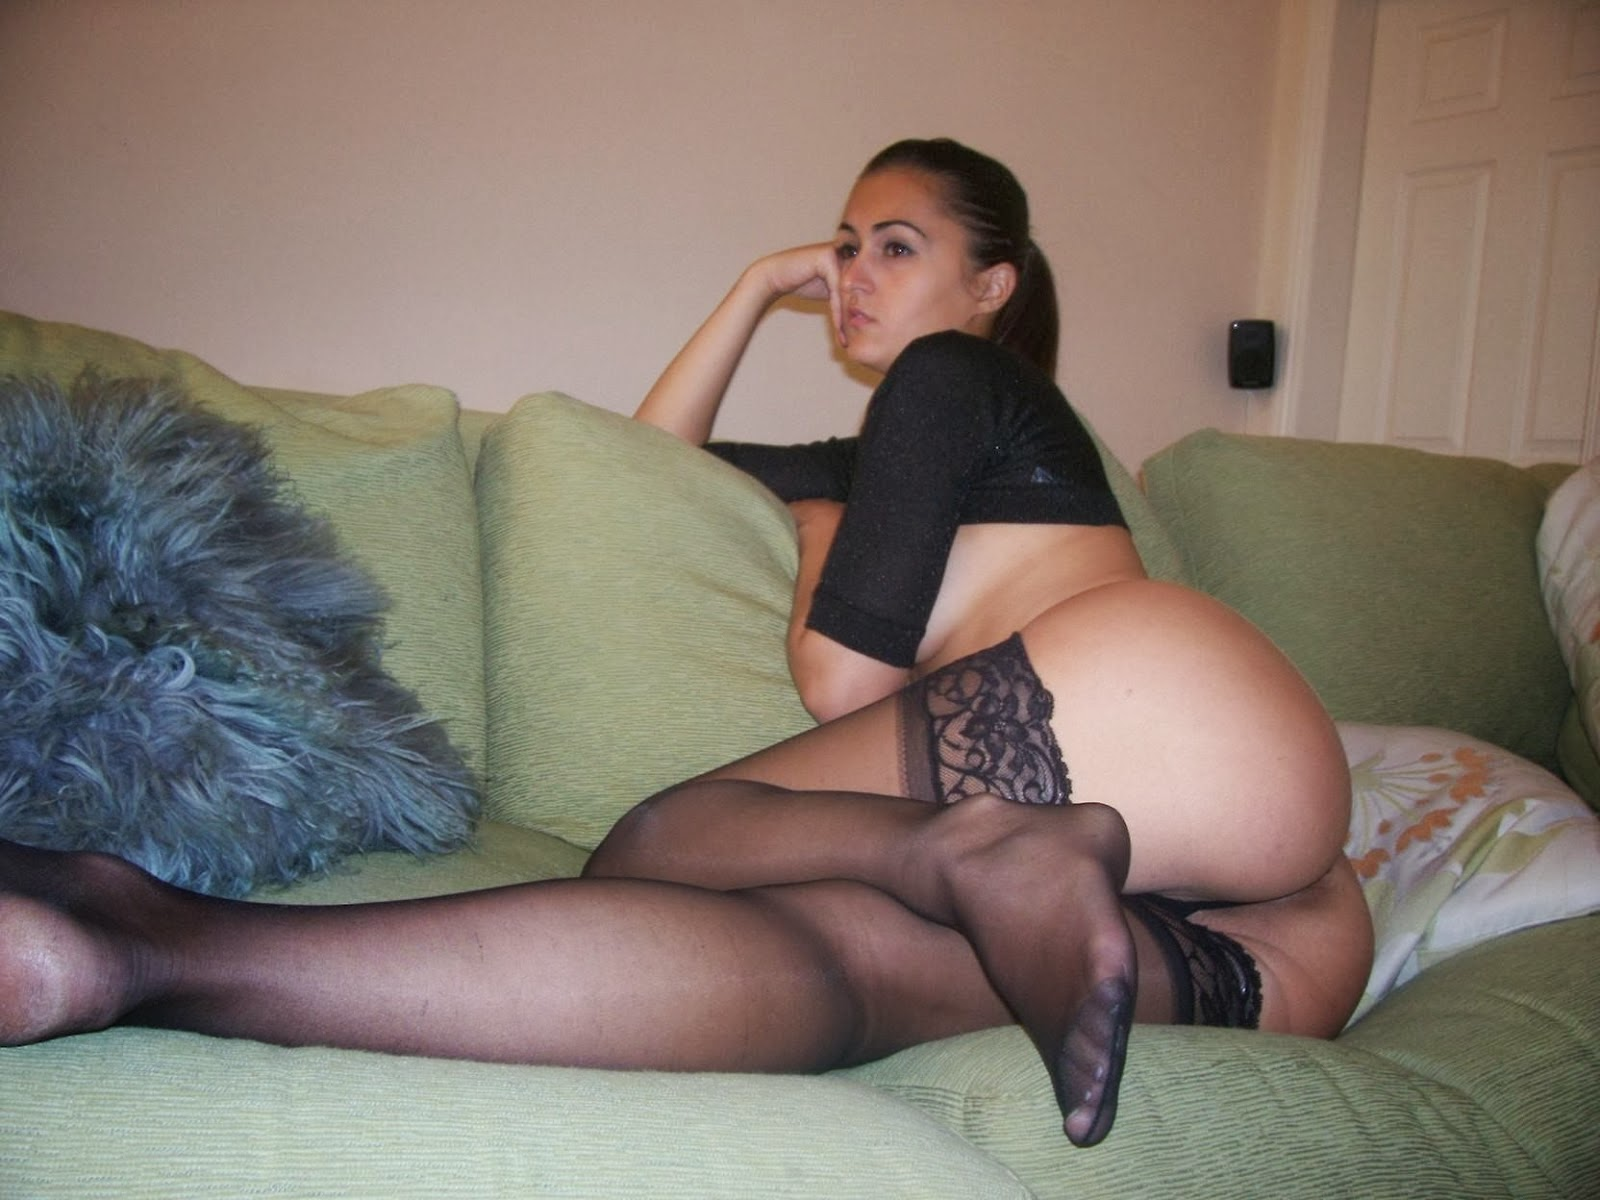 For pantyhose amatuer pics